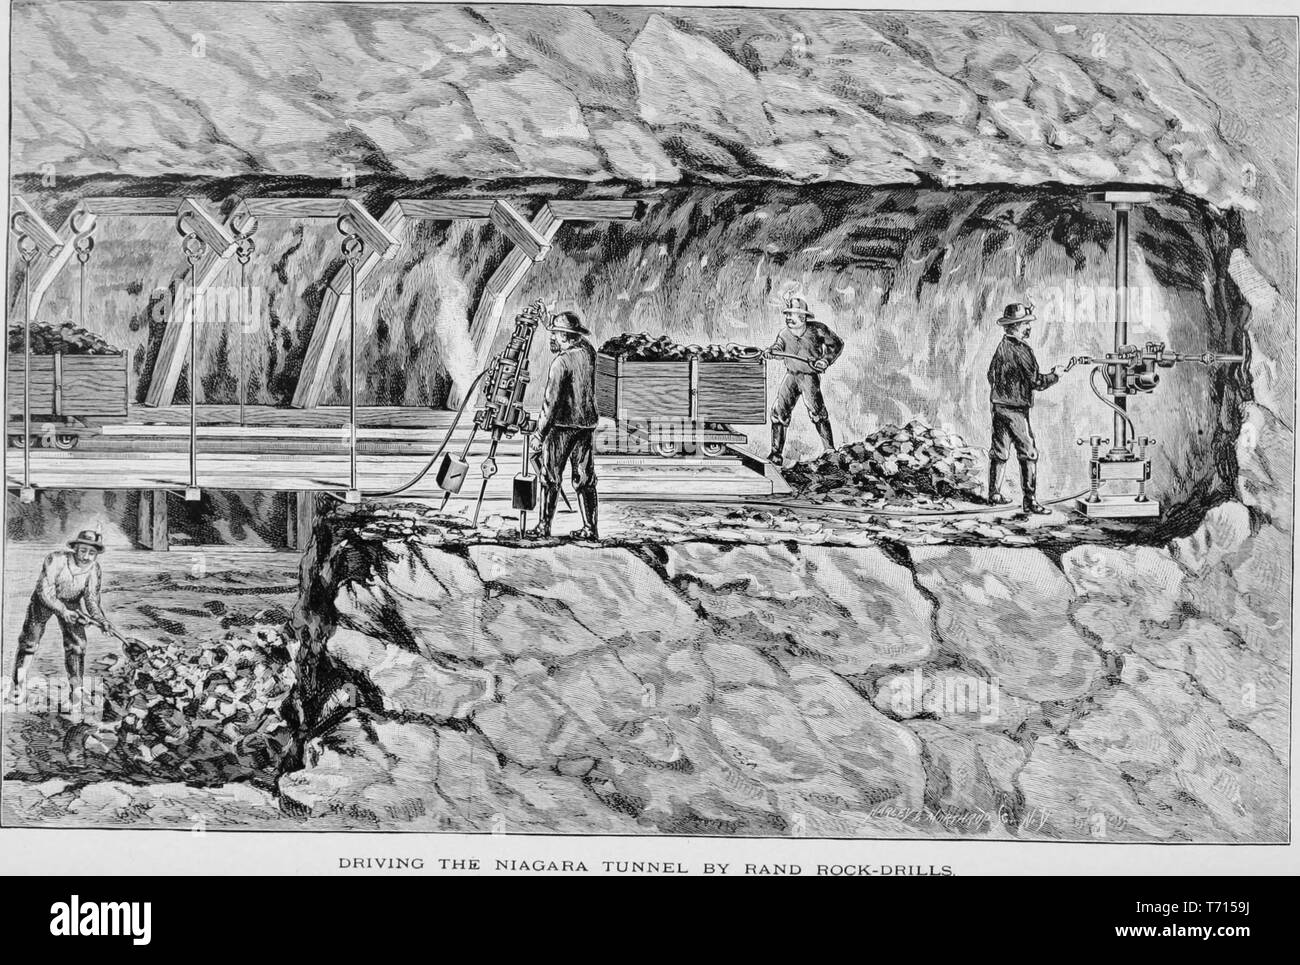 Engraving of driving the Niagara tunnel by Rand rock drills, from the book 'Modern Mechanism' by Park Benjamin, 1892. Courtesy Internet Archive. () - Stock Image